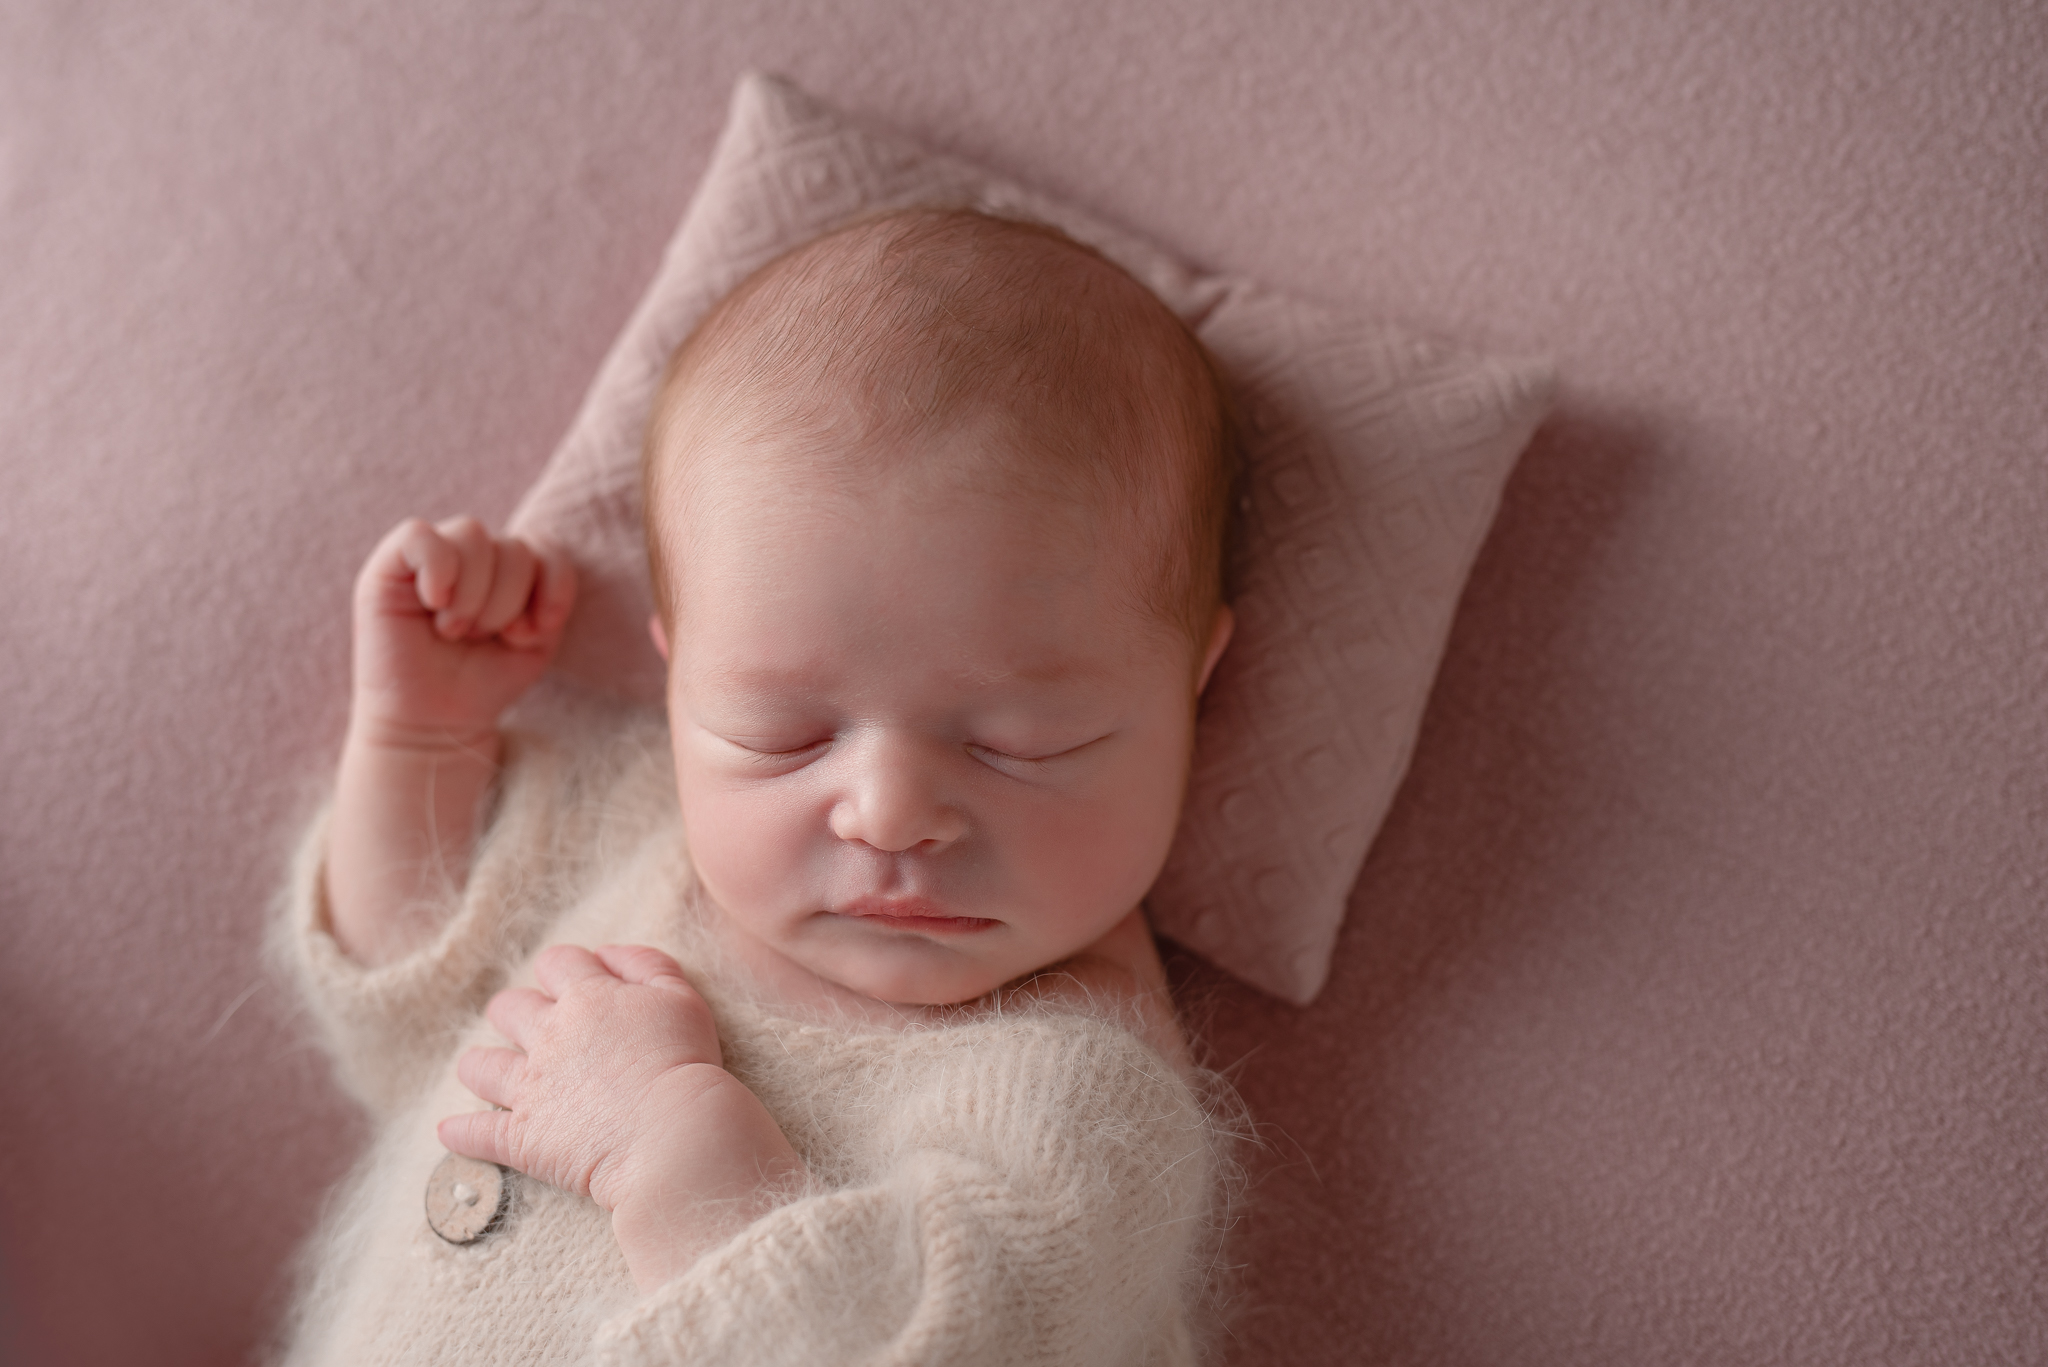 Newborn550NaomiLuciennePhotography032019-Edit.jpg